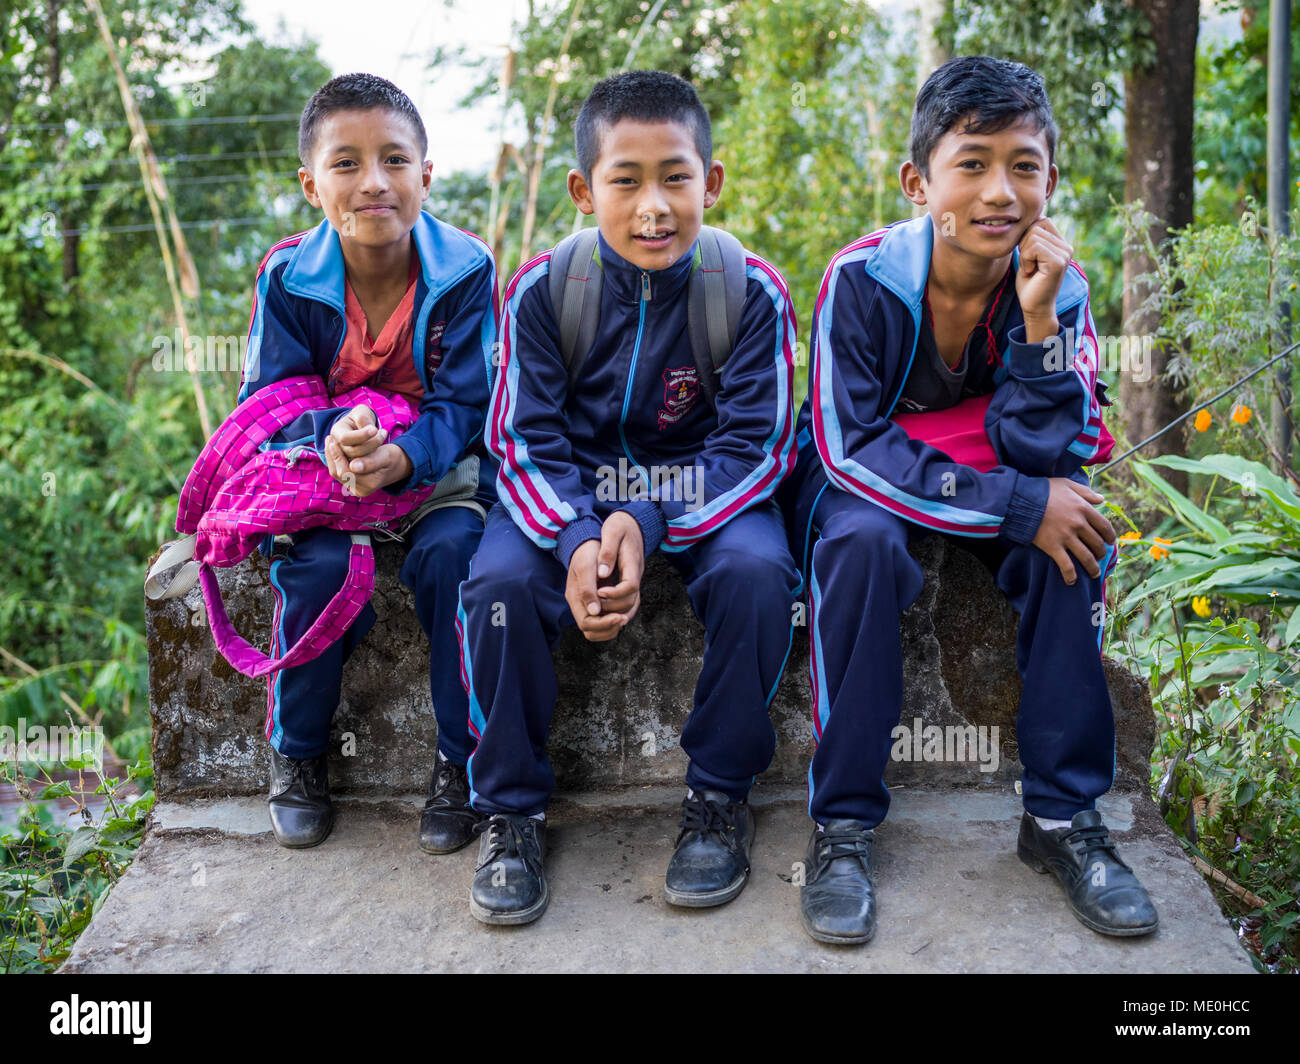 Portrait of three male students in uniform sitting on a concrete ledge, Glenburn Tea Estate; Darjeeling, West Bengal, India - Stock Image